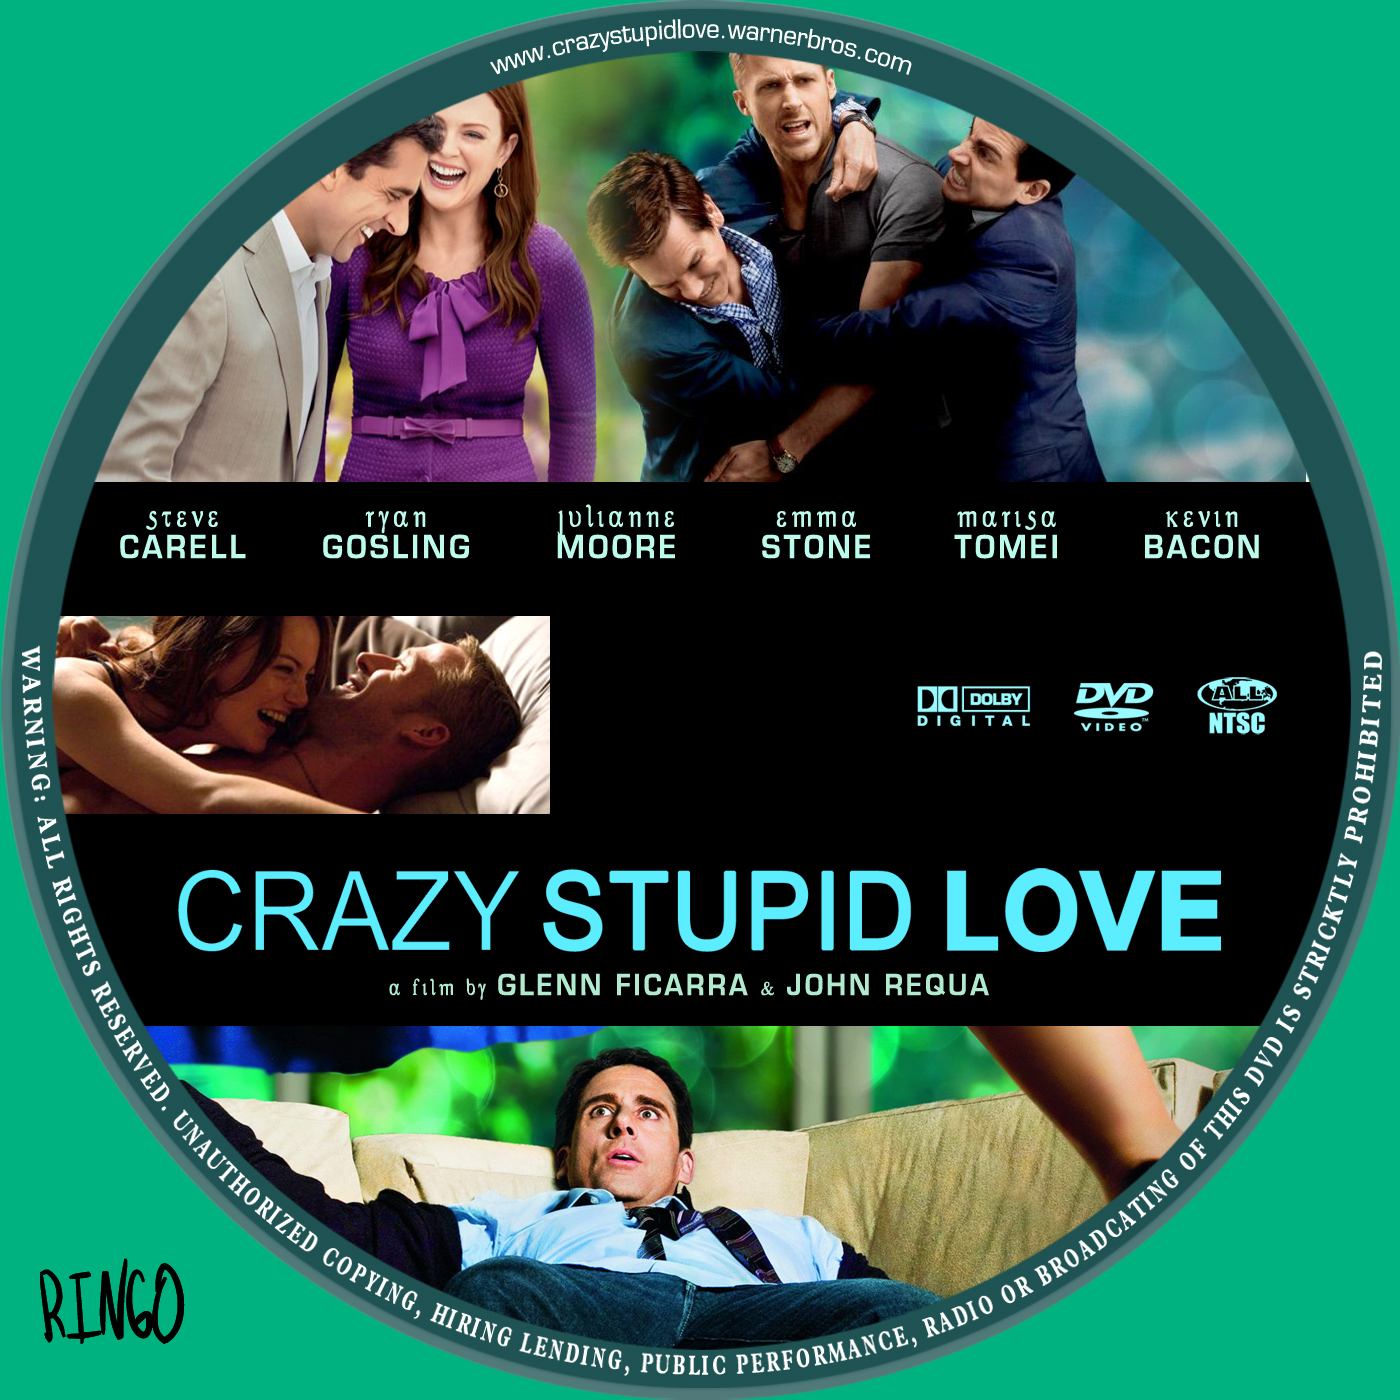 download crazy stupid love full movie 480p